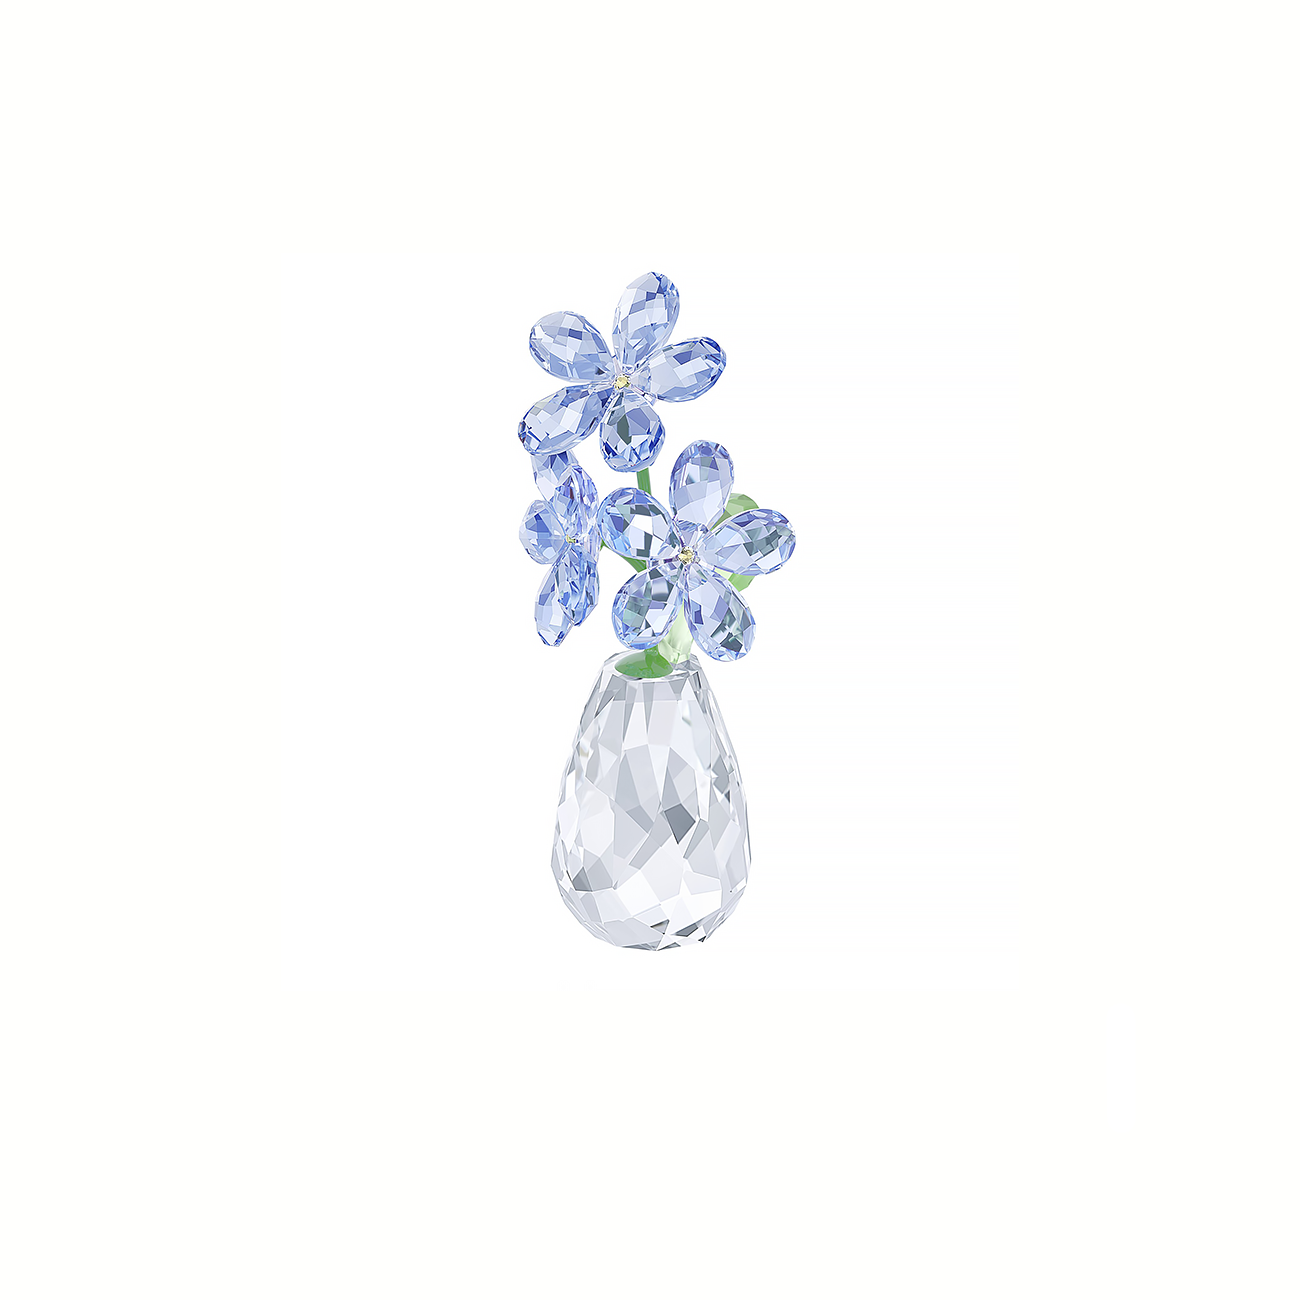 FLOWER DREAMS – FORGET-ME-NOT 5254325